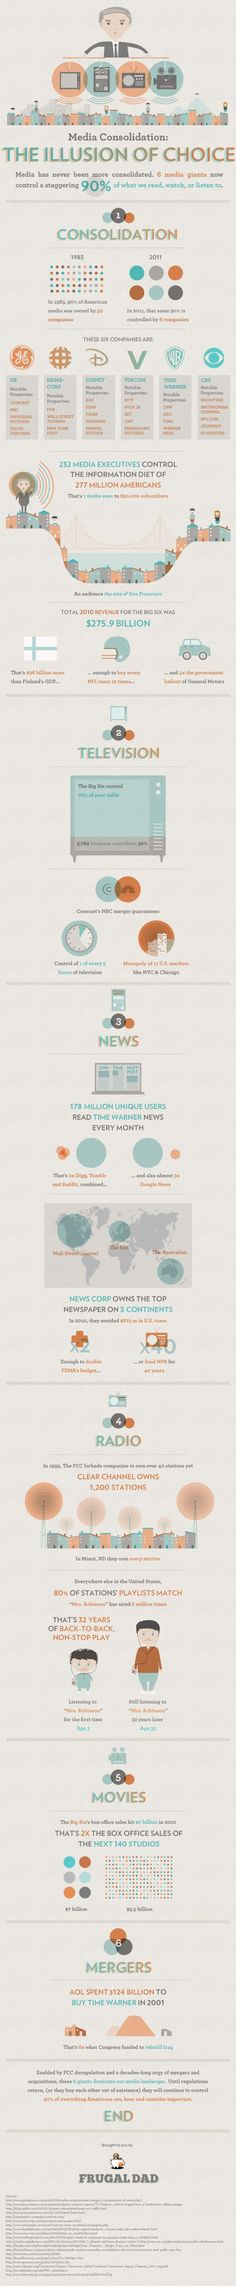 Media Consolidation: The Illusion of Choice [INFOGRAPHIC]